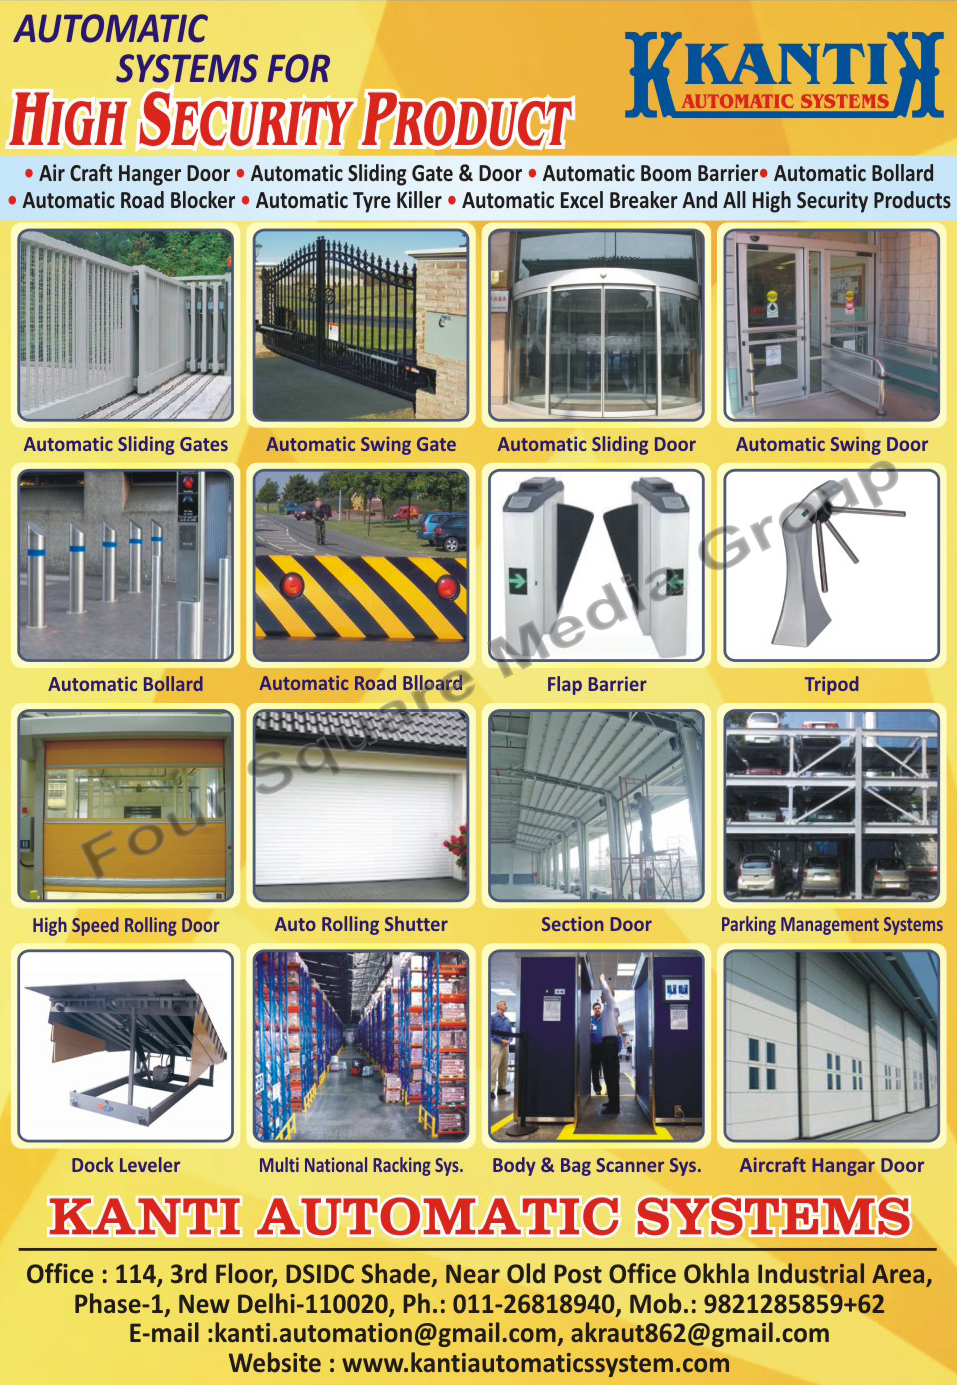 Sliding Doors, Automatic Barriers, Automatic Ballard, Sliding Gates Automatic, Air Craft Hanger Door, Automatic Tyre Killer, Automatic Excel Breaker, Automatic Road Blocker, Road Safety Products, Automatic Boom Barriers, Automatic Sliding Gates, Automatic Sliding Doors, Automatic Swing Gates, Automatic Swing Doors, Automatic Bollards, Automatic Road Bollards, Flap Barriers, Tripods, High Speed Rolling Doors, Auto Rolling Shutters, Section Doors, Parking Management Systems, Dock Levelers, Multi National Racking Systems, Body Scanner Systems, Bag Scanner Systems, Security Products